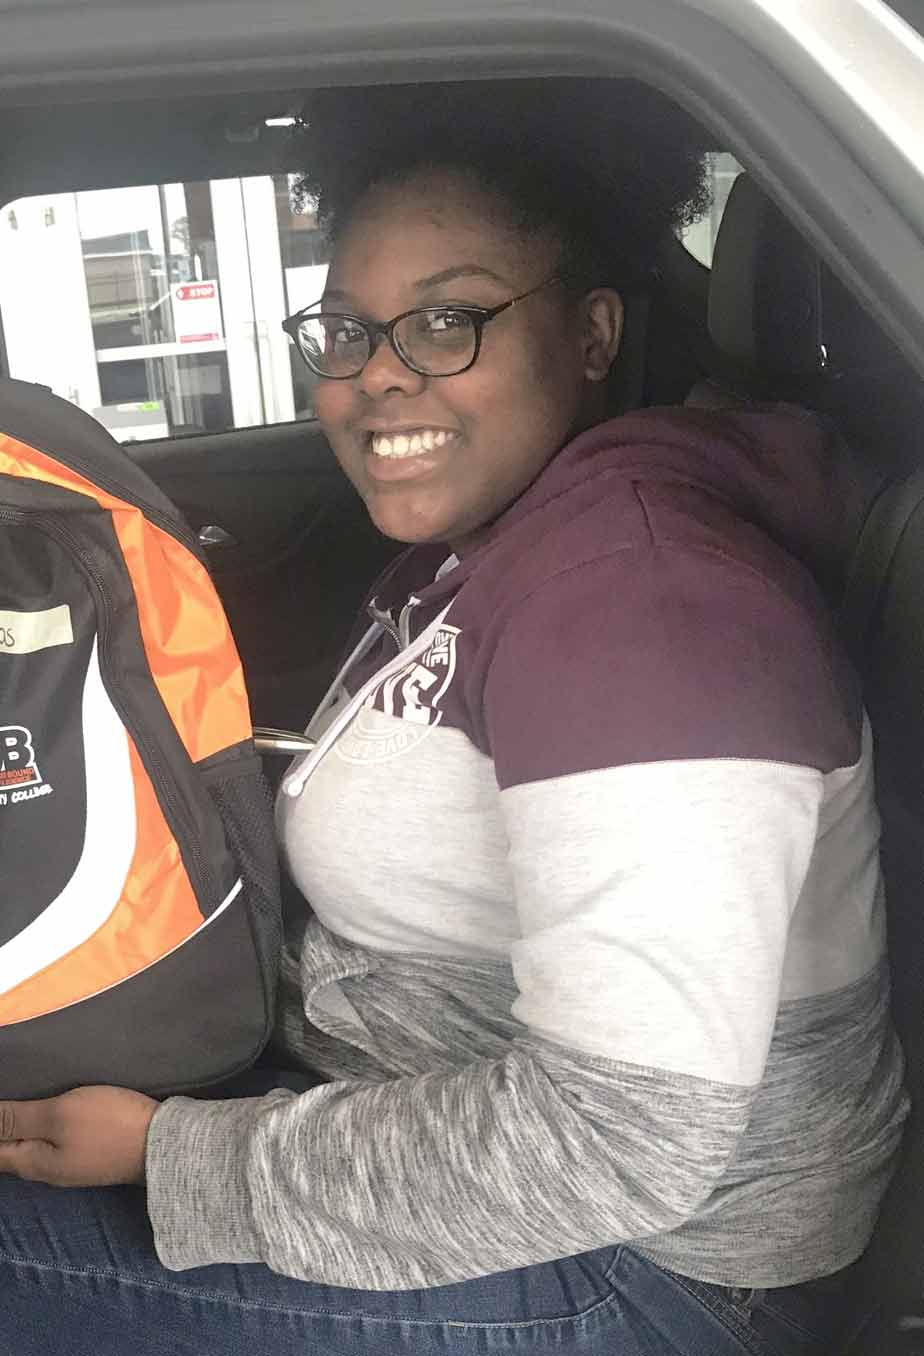 Click to enlarge,  Candice Douglass shows off the book bag she received that was filled with school supplies and STEM related items for hands-on learning activities for the TRIO Upward Bound summer program.